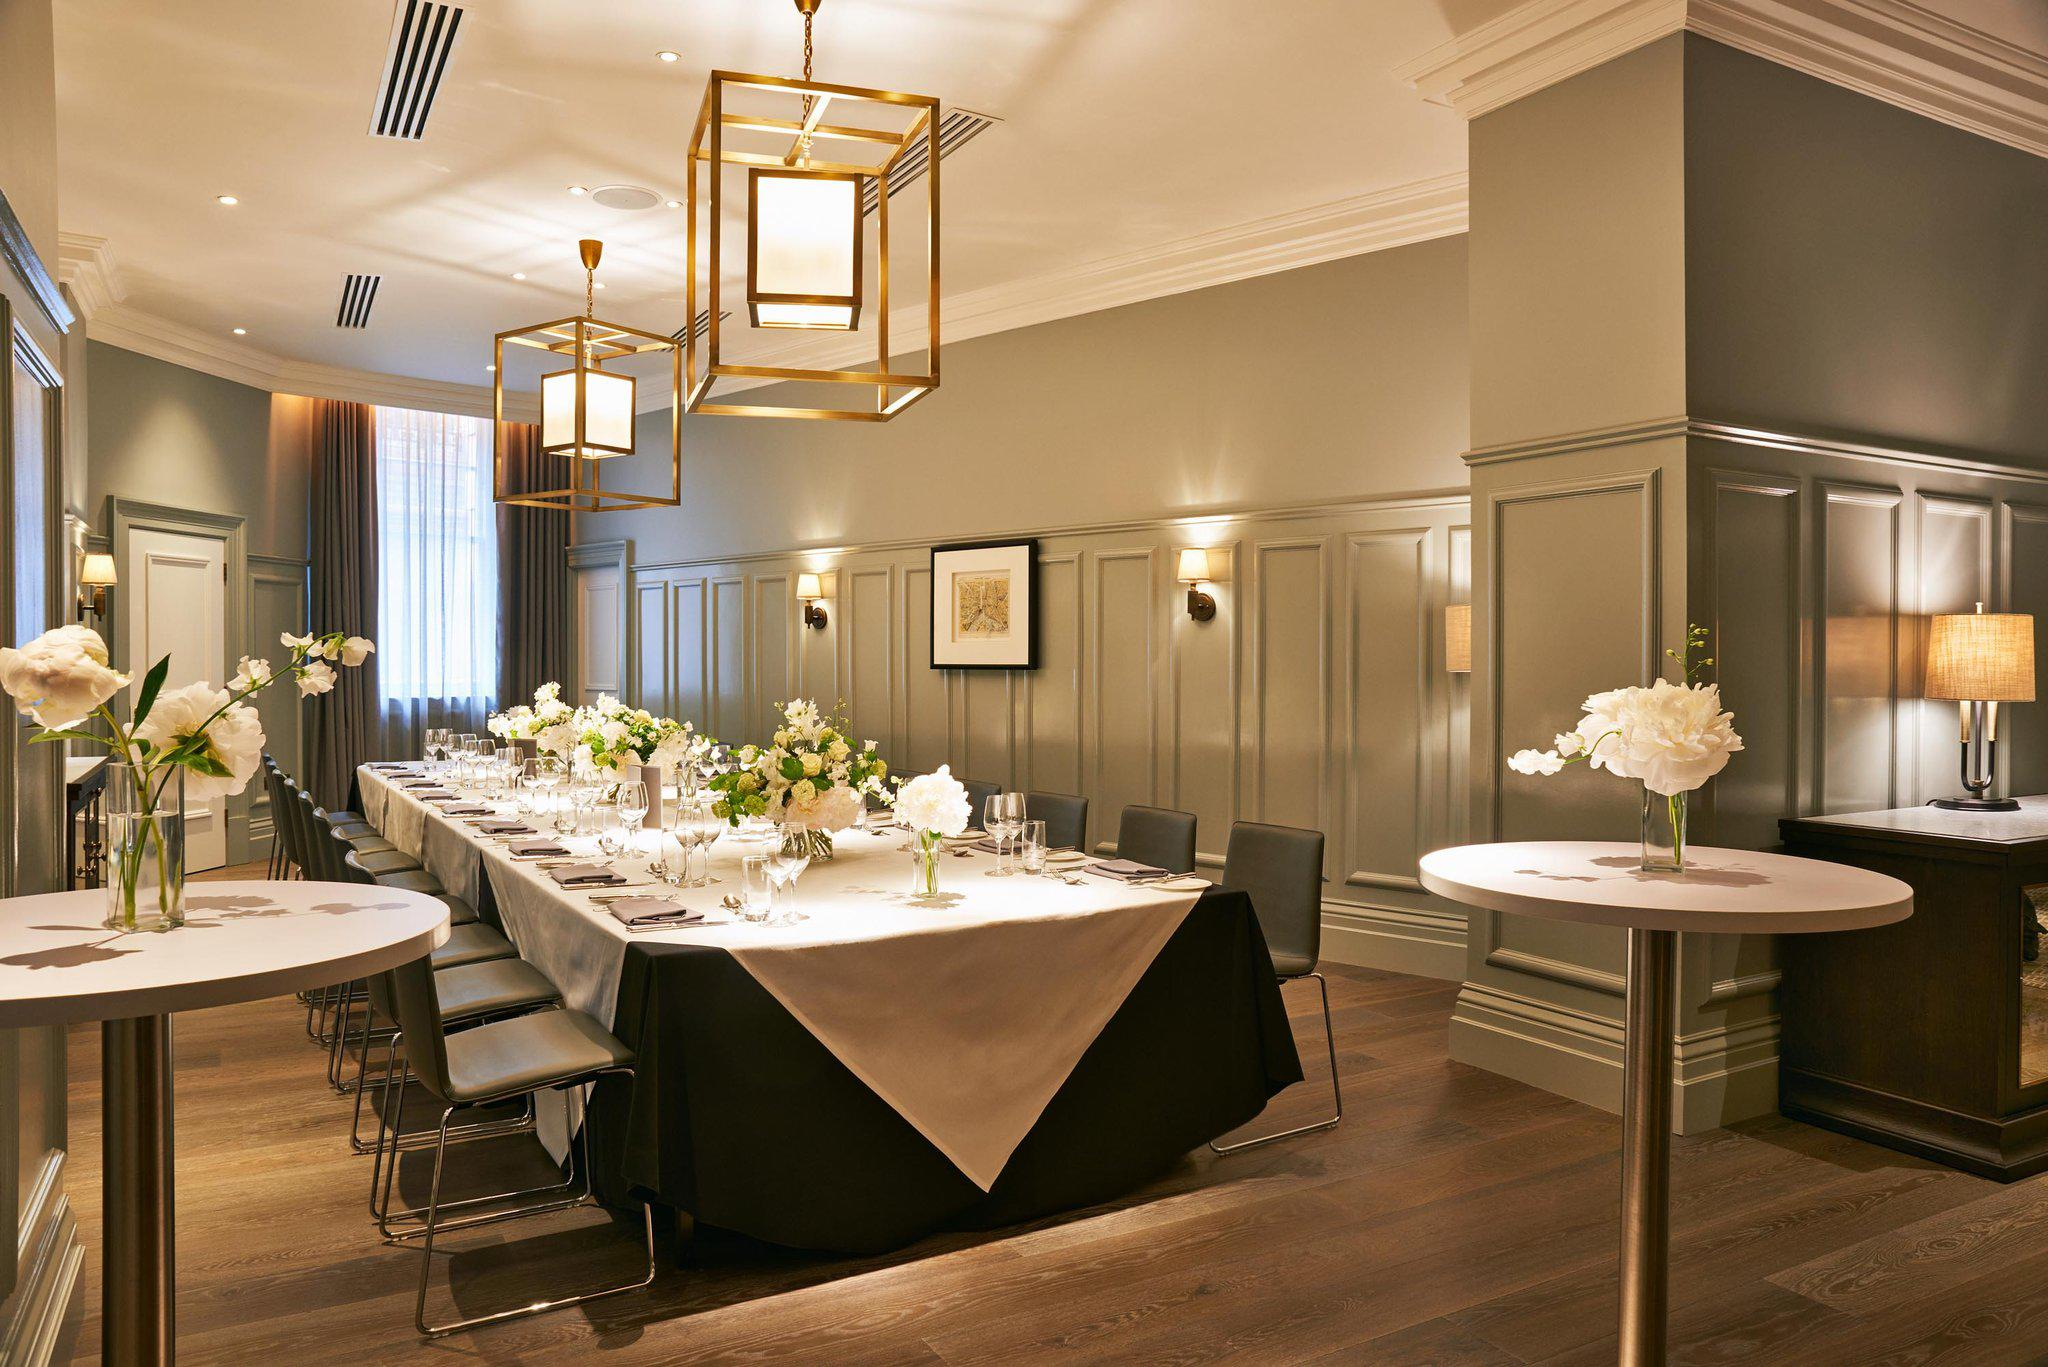 Kimpton Fitzroy London London 020 7123 5000